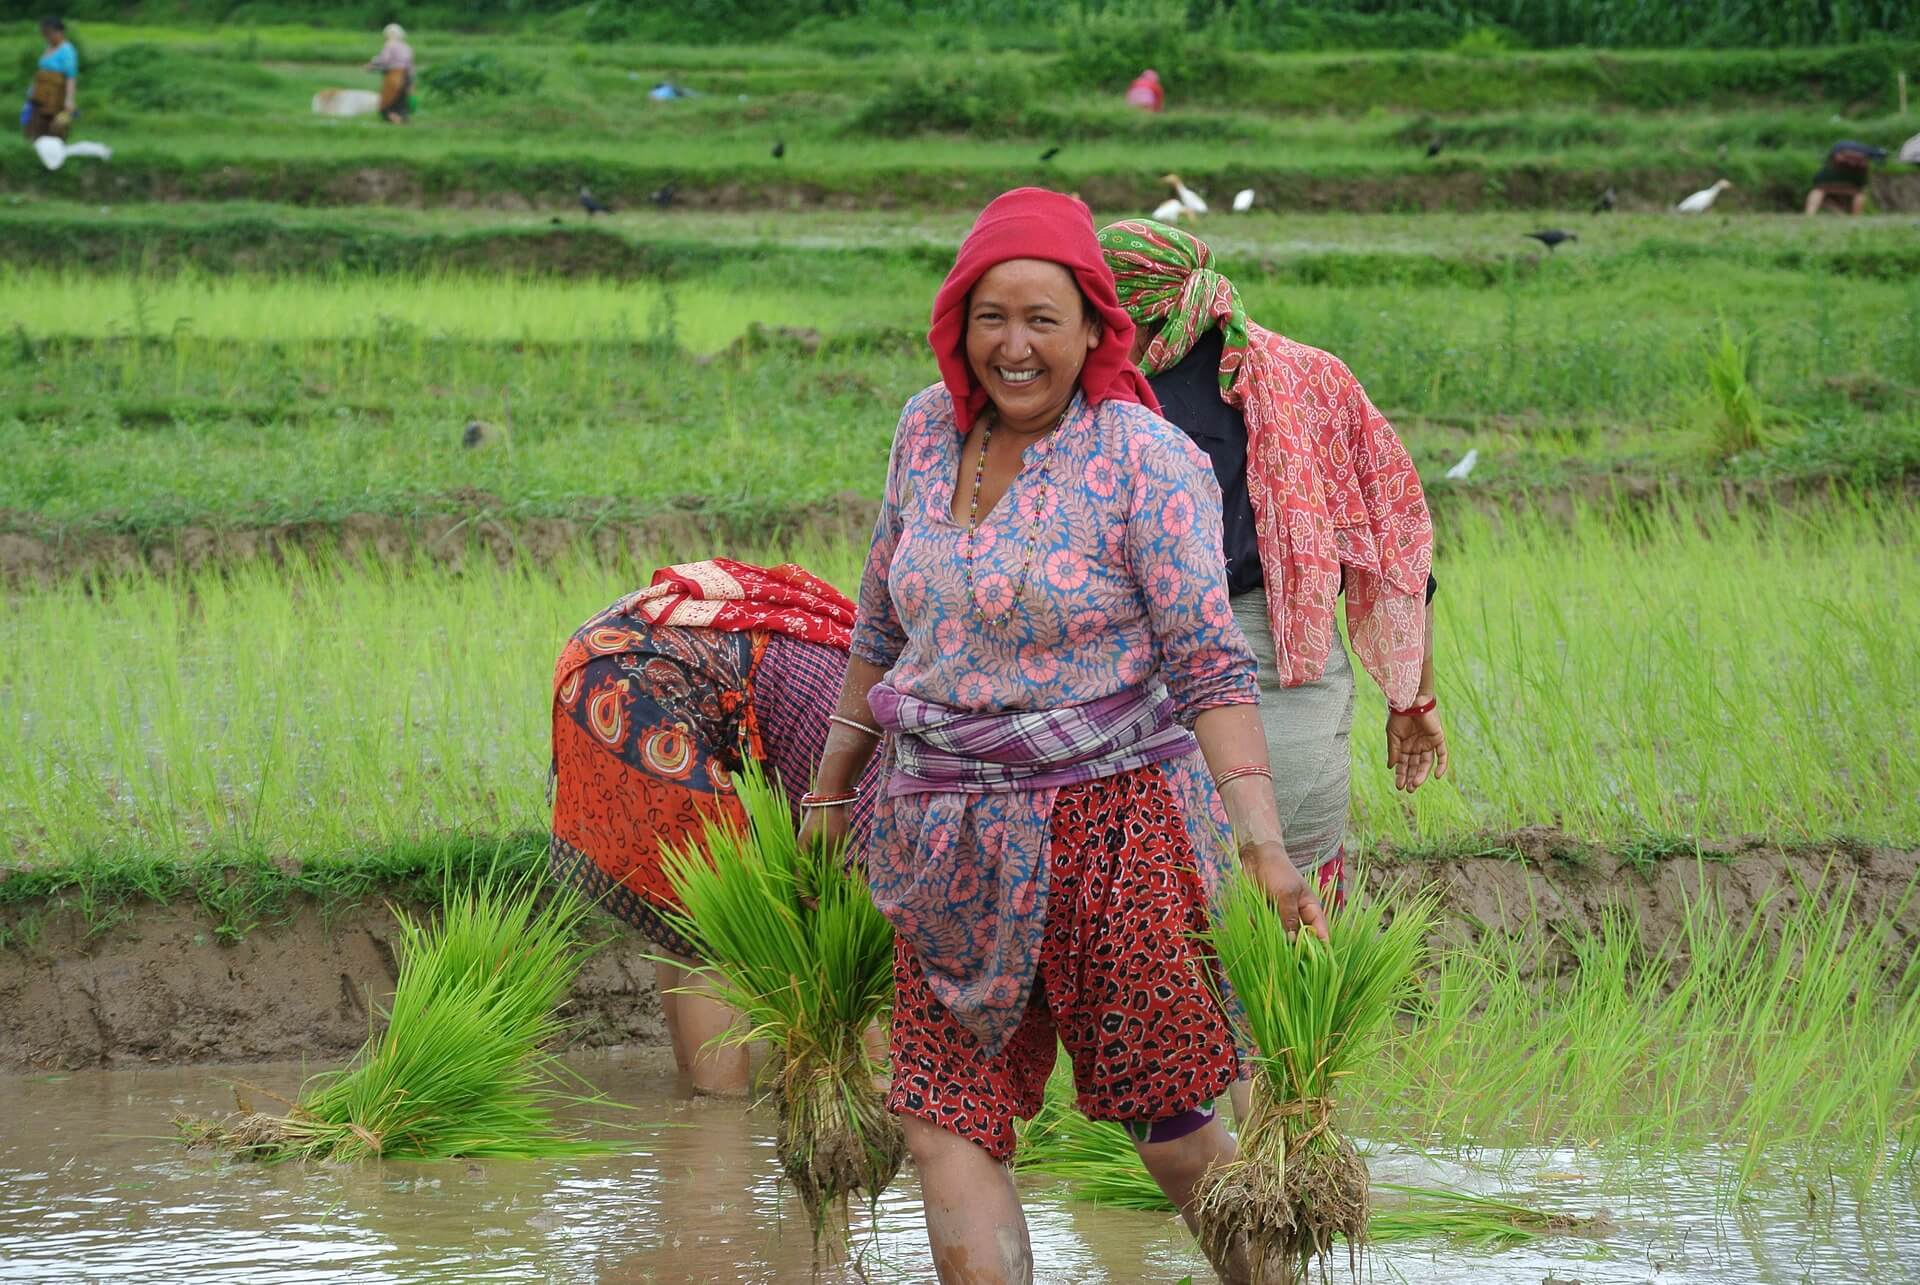 Culture in Nepal - Planting Crops, Rice